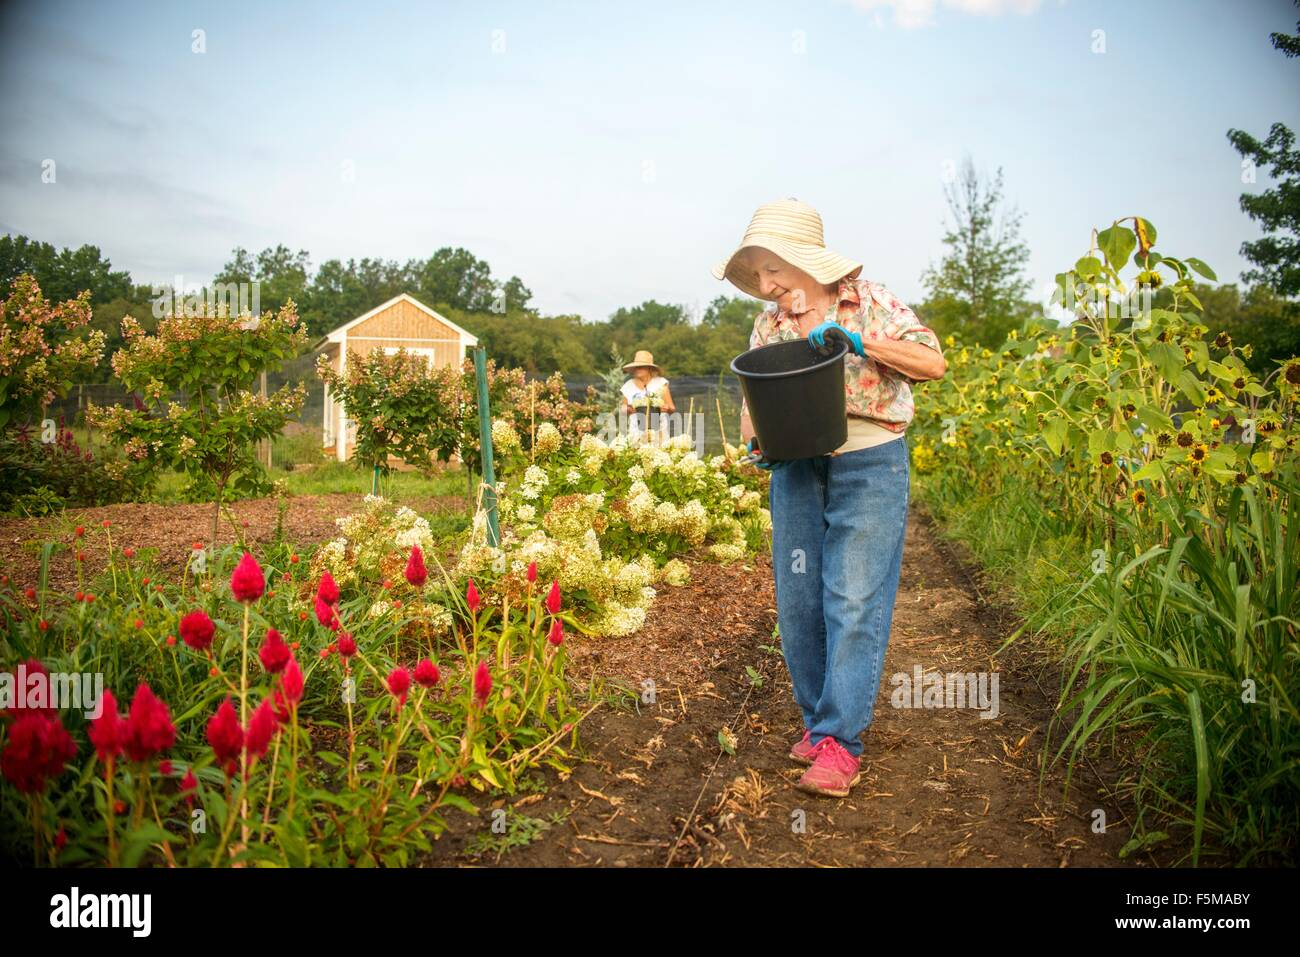 Senior woman watering flowers with bucket on farm - Stock Image